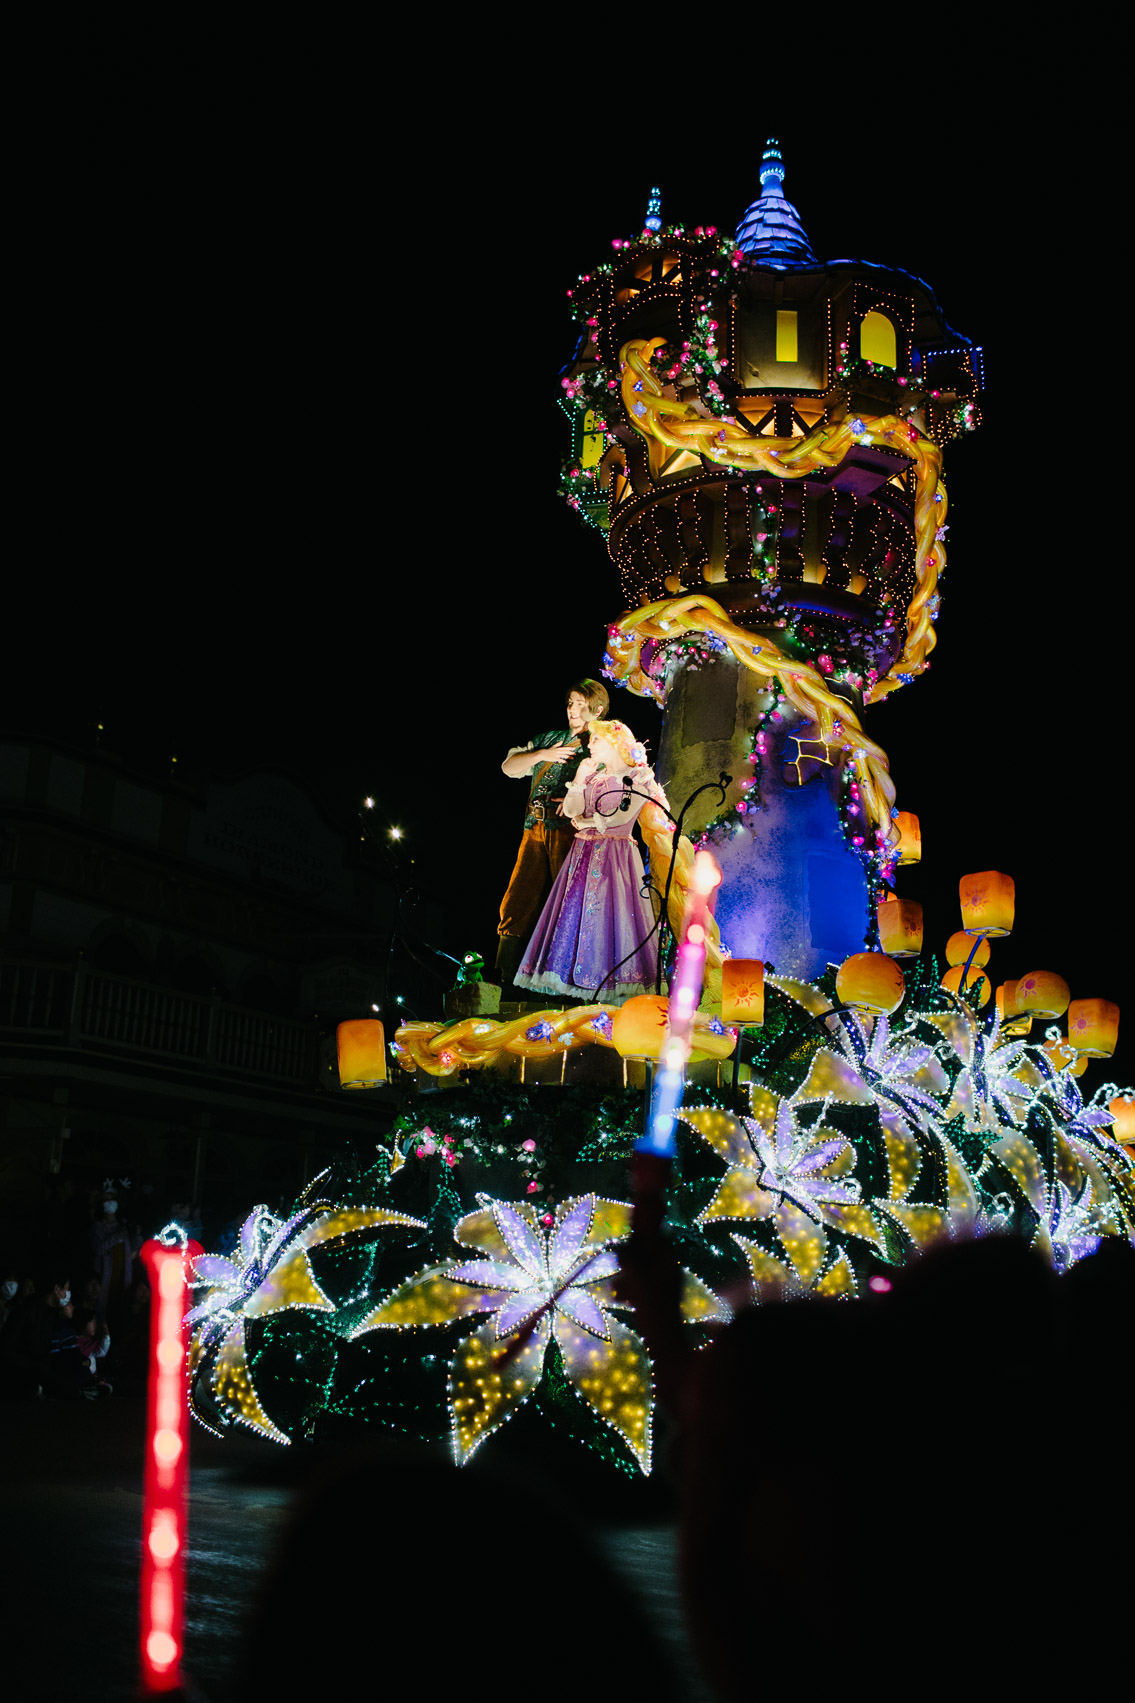 Tokyo Disneyland Electrical parade - The cat, you and us